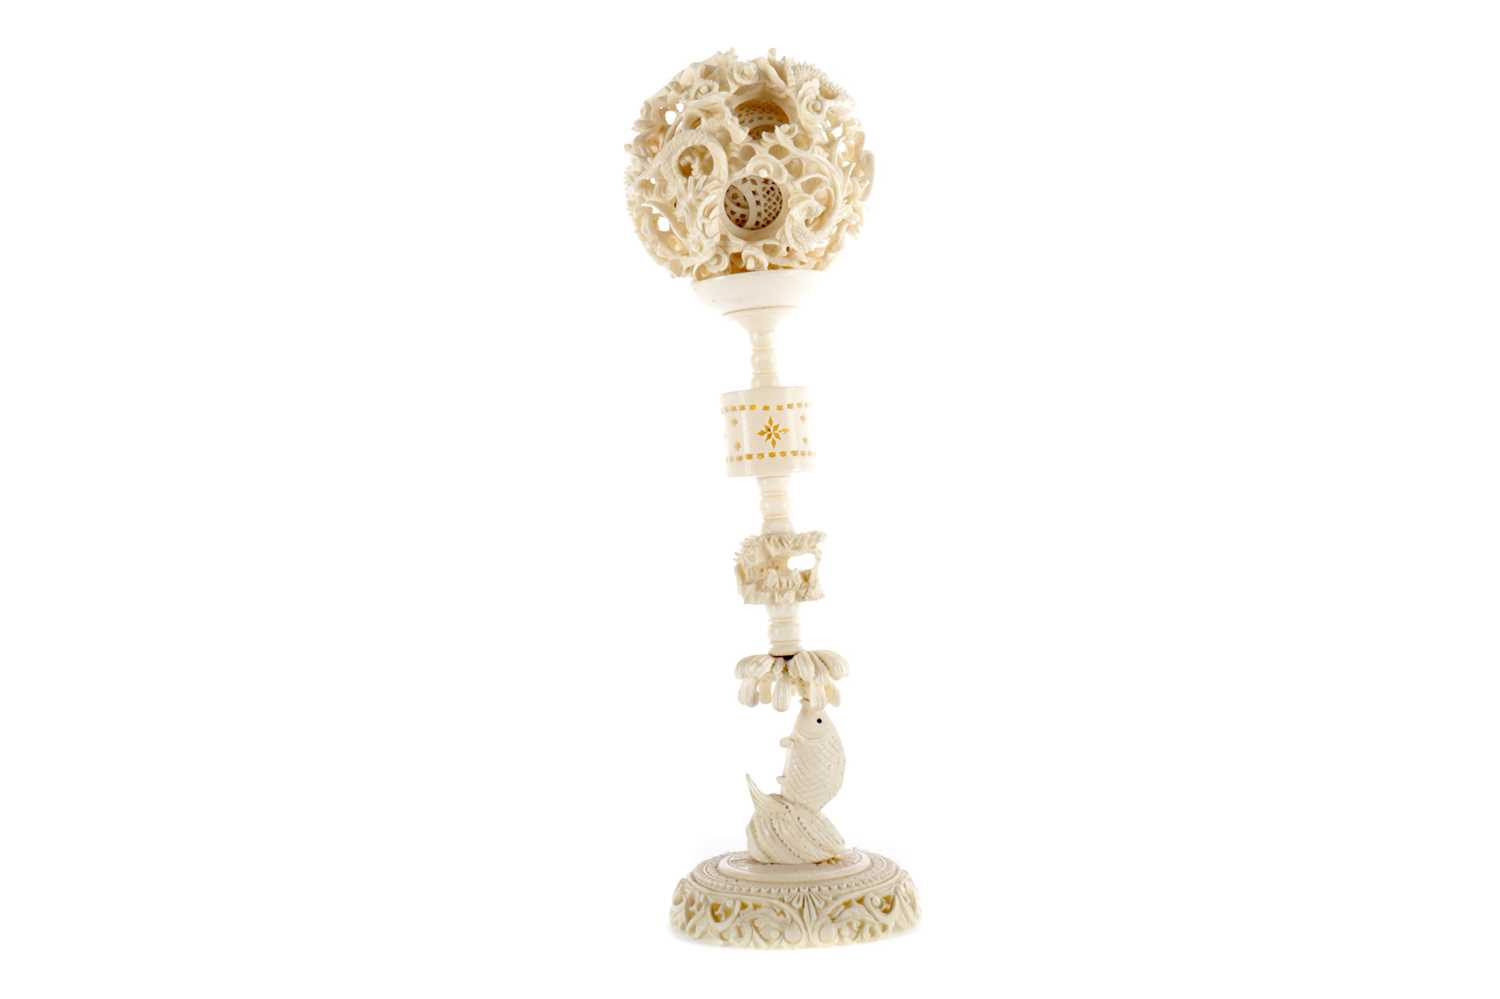 Lot 803 - AN EARLY 20TH CENTURY CHINESE IVORY CONCENTRIC BALL ON STAND